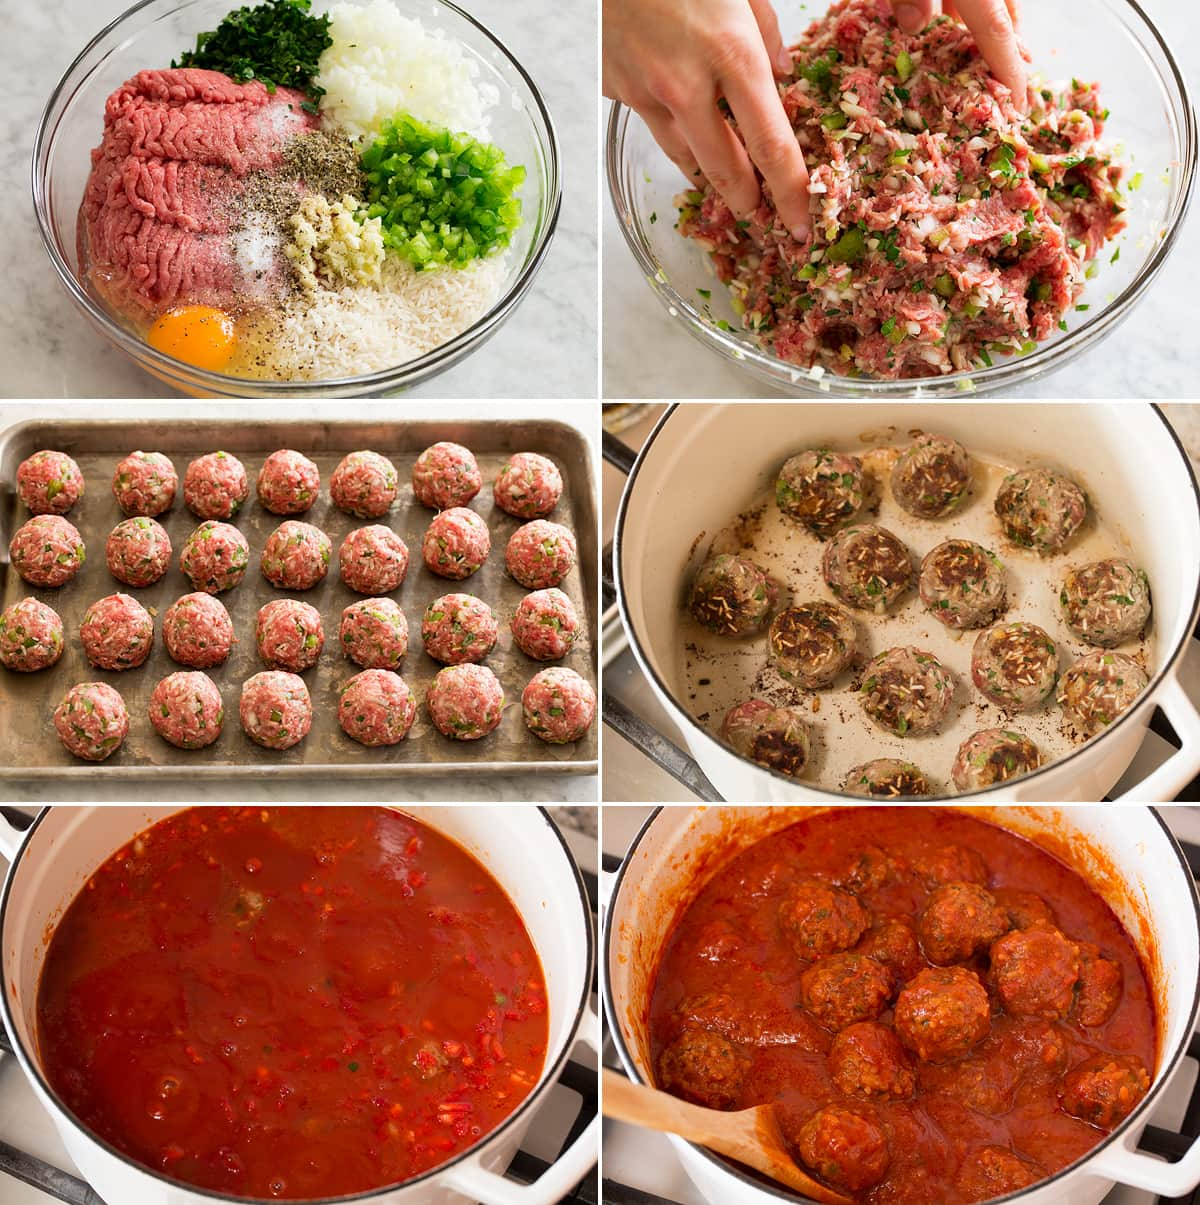 Photo of steps showing how to make porcupine meatballs. Shows meatball mixture before and after shaping. Shown in rounds on a baking sheet. Then browning and covered with sauce.